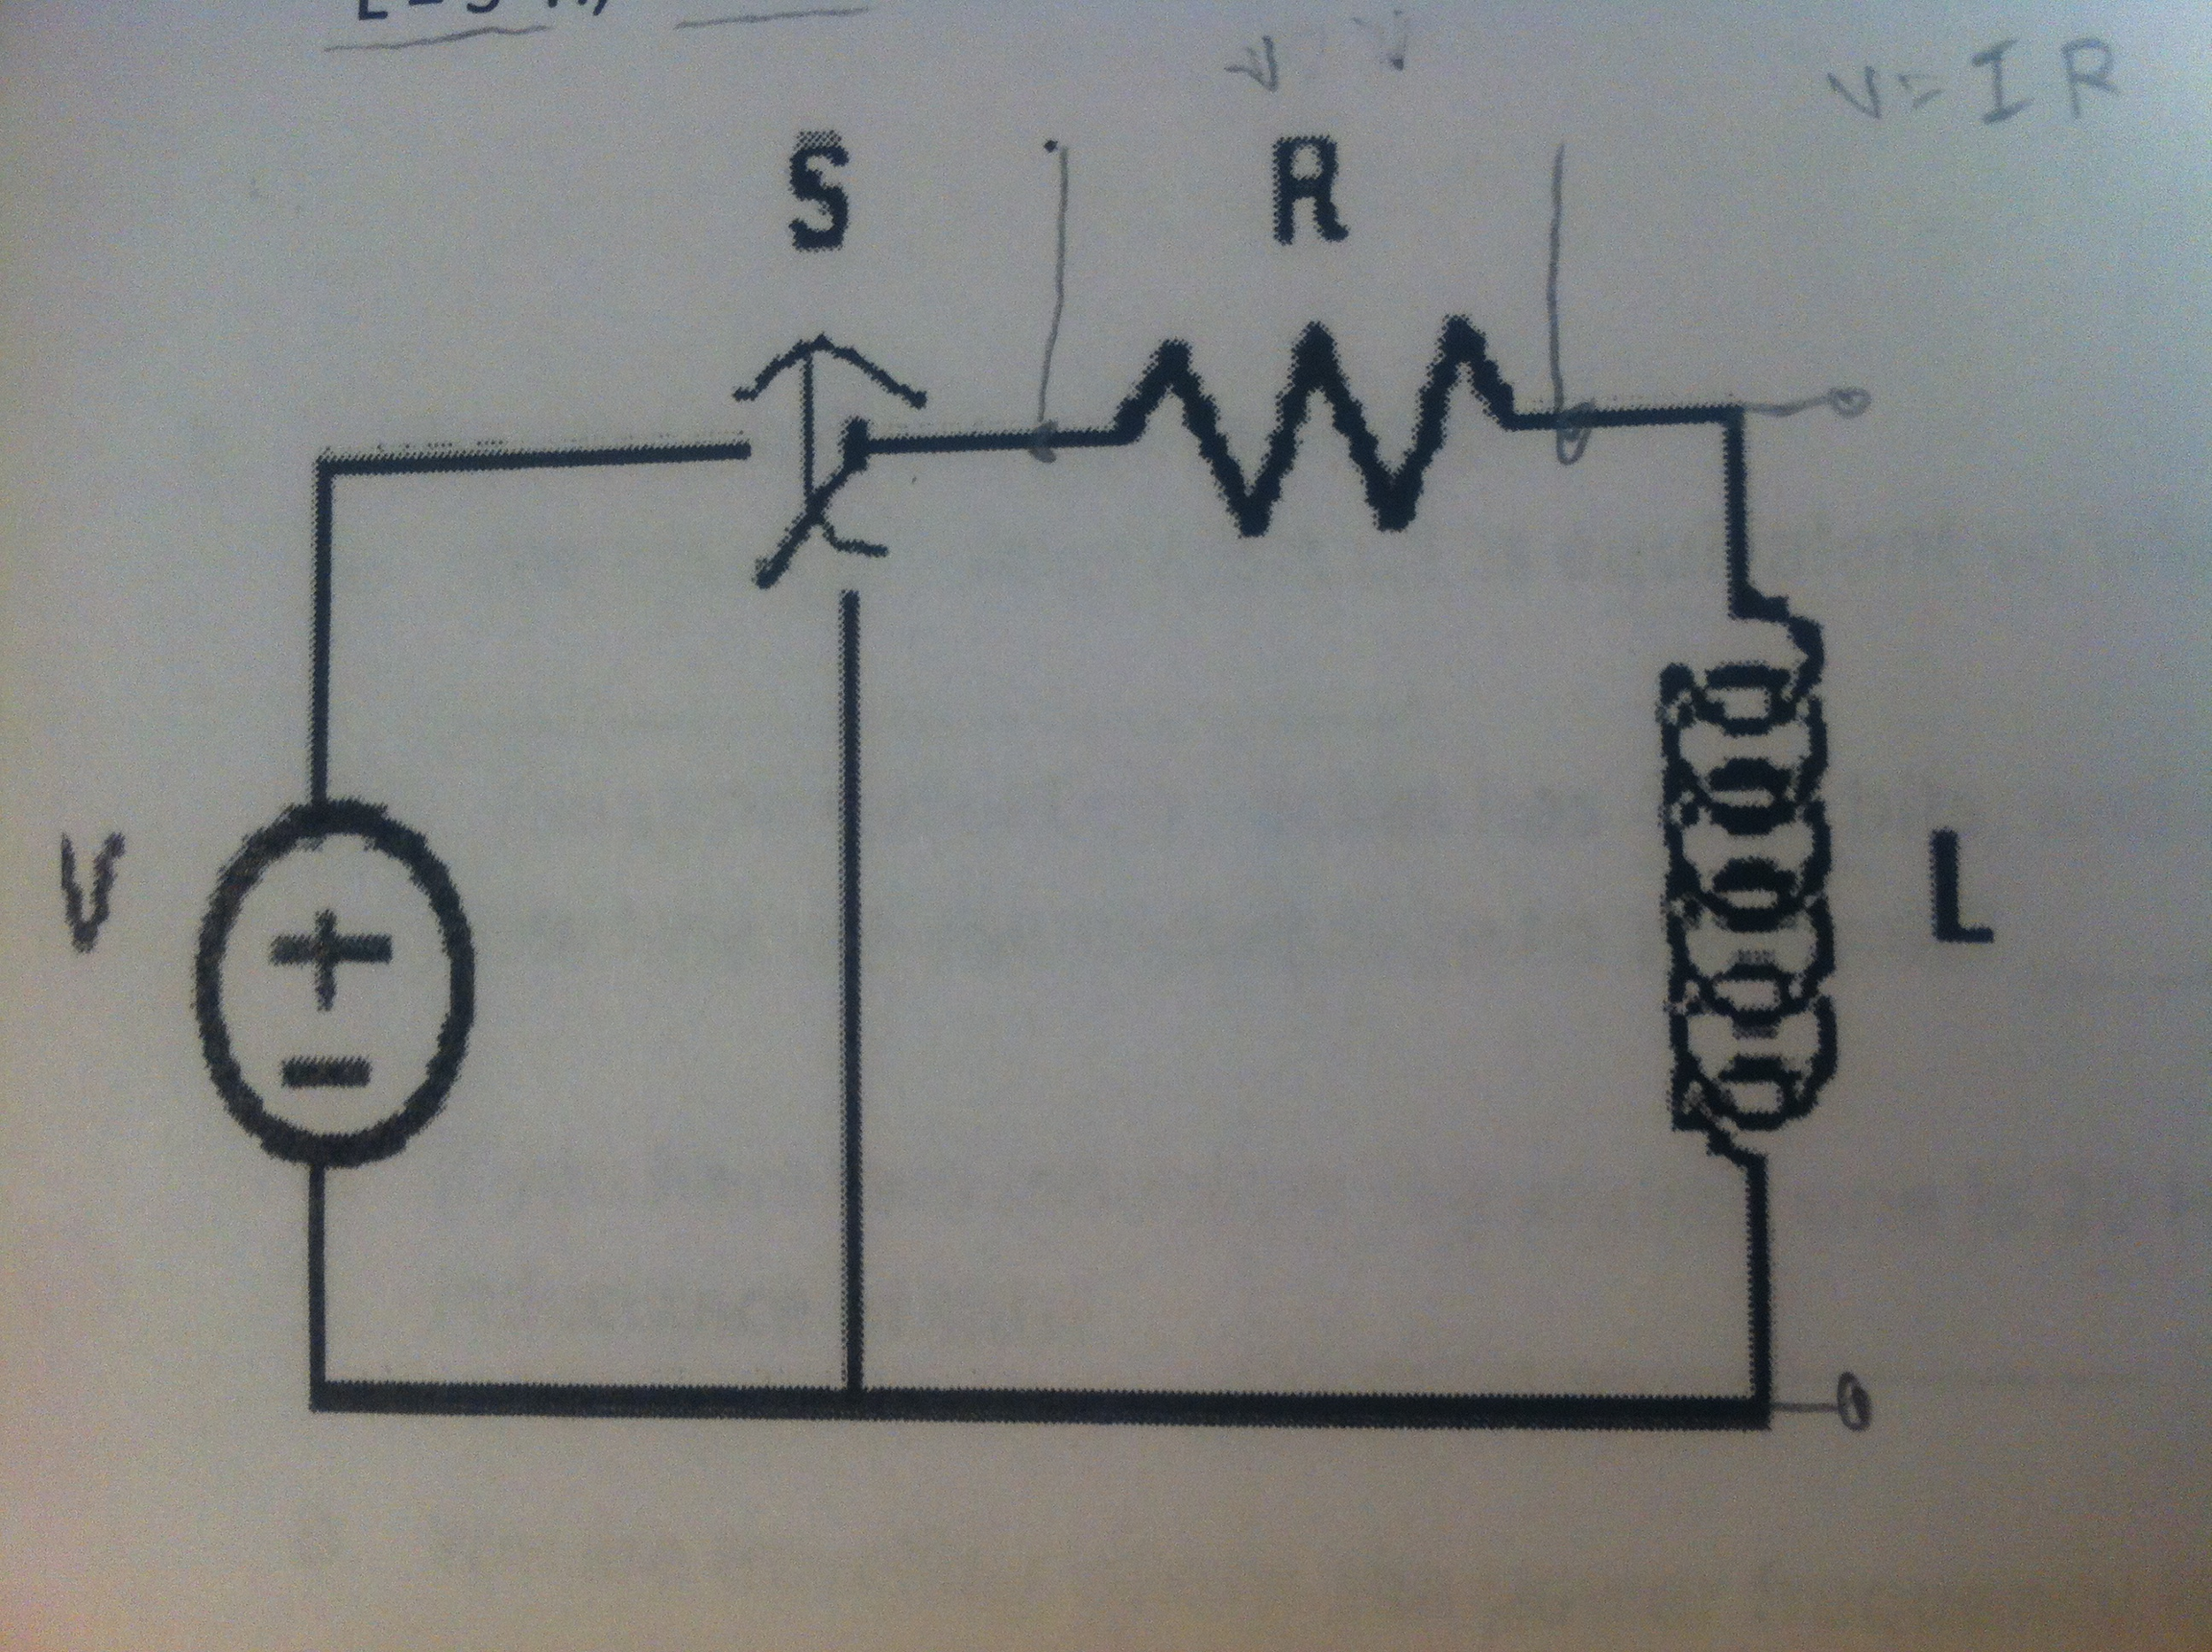 For the following circuit S (the switch) change po